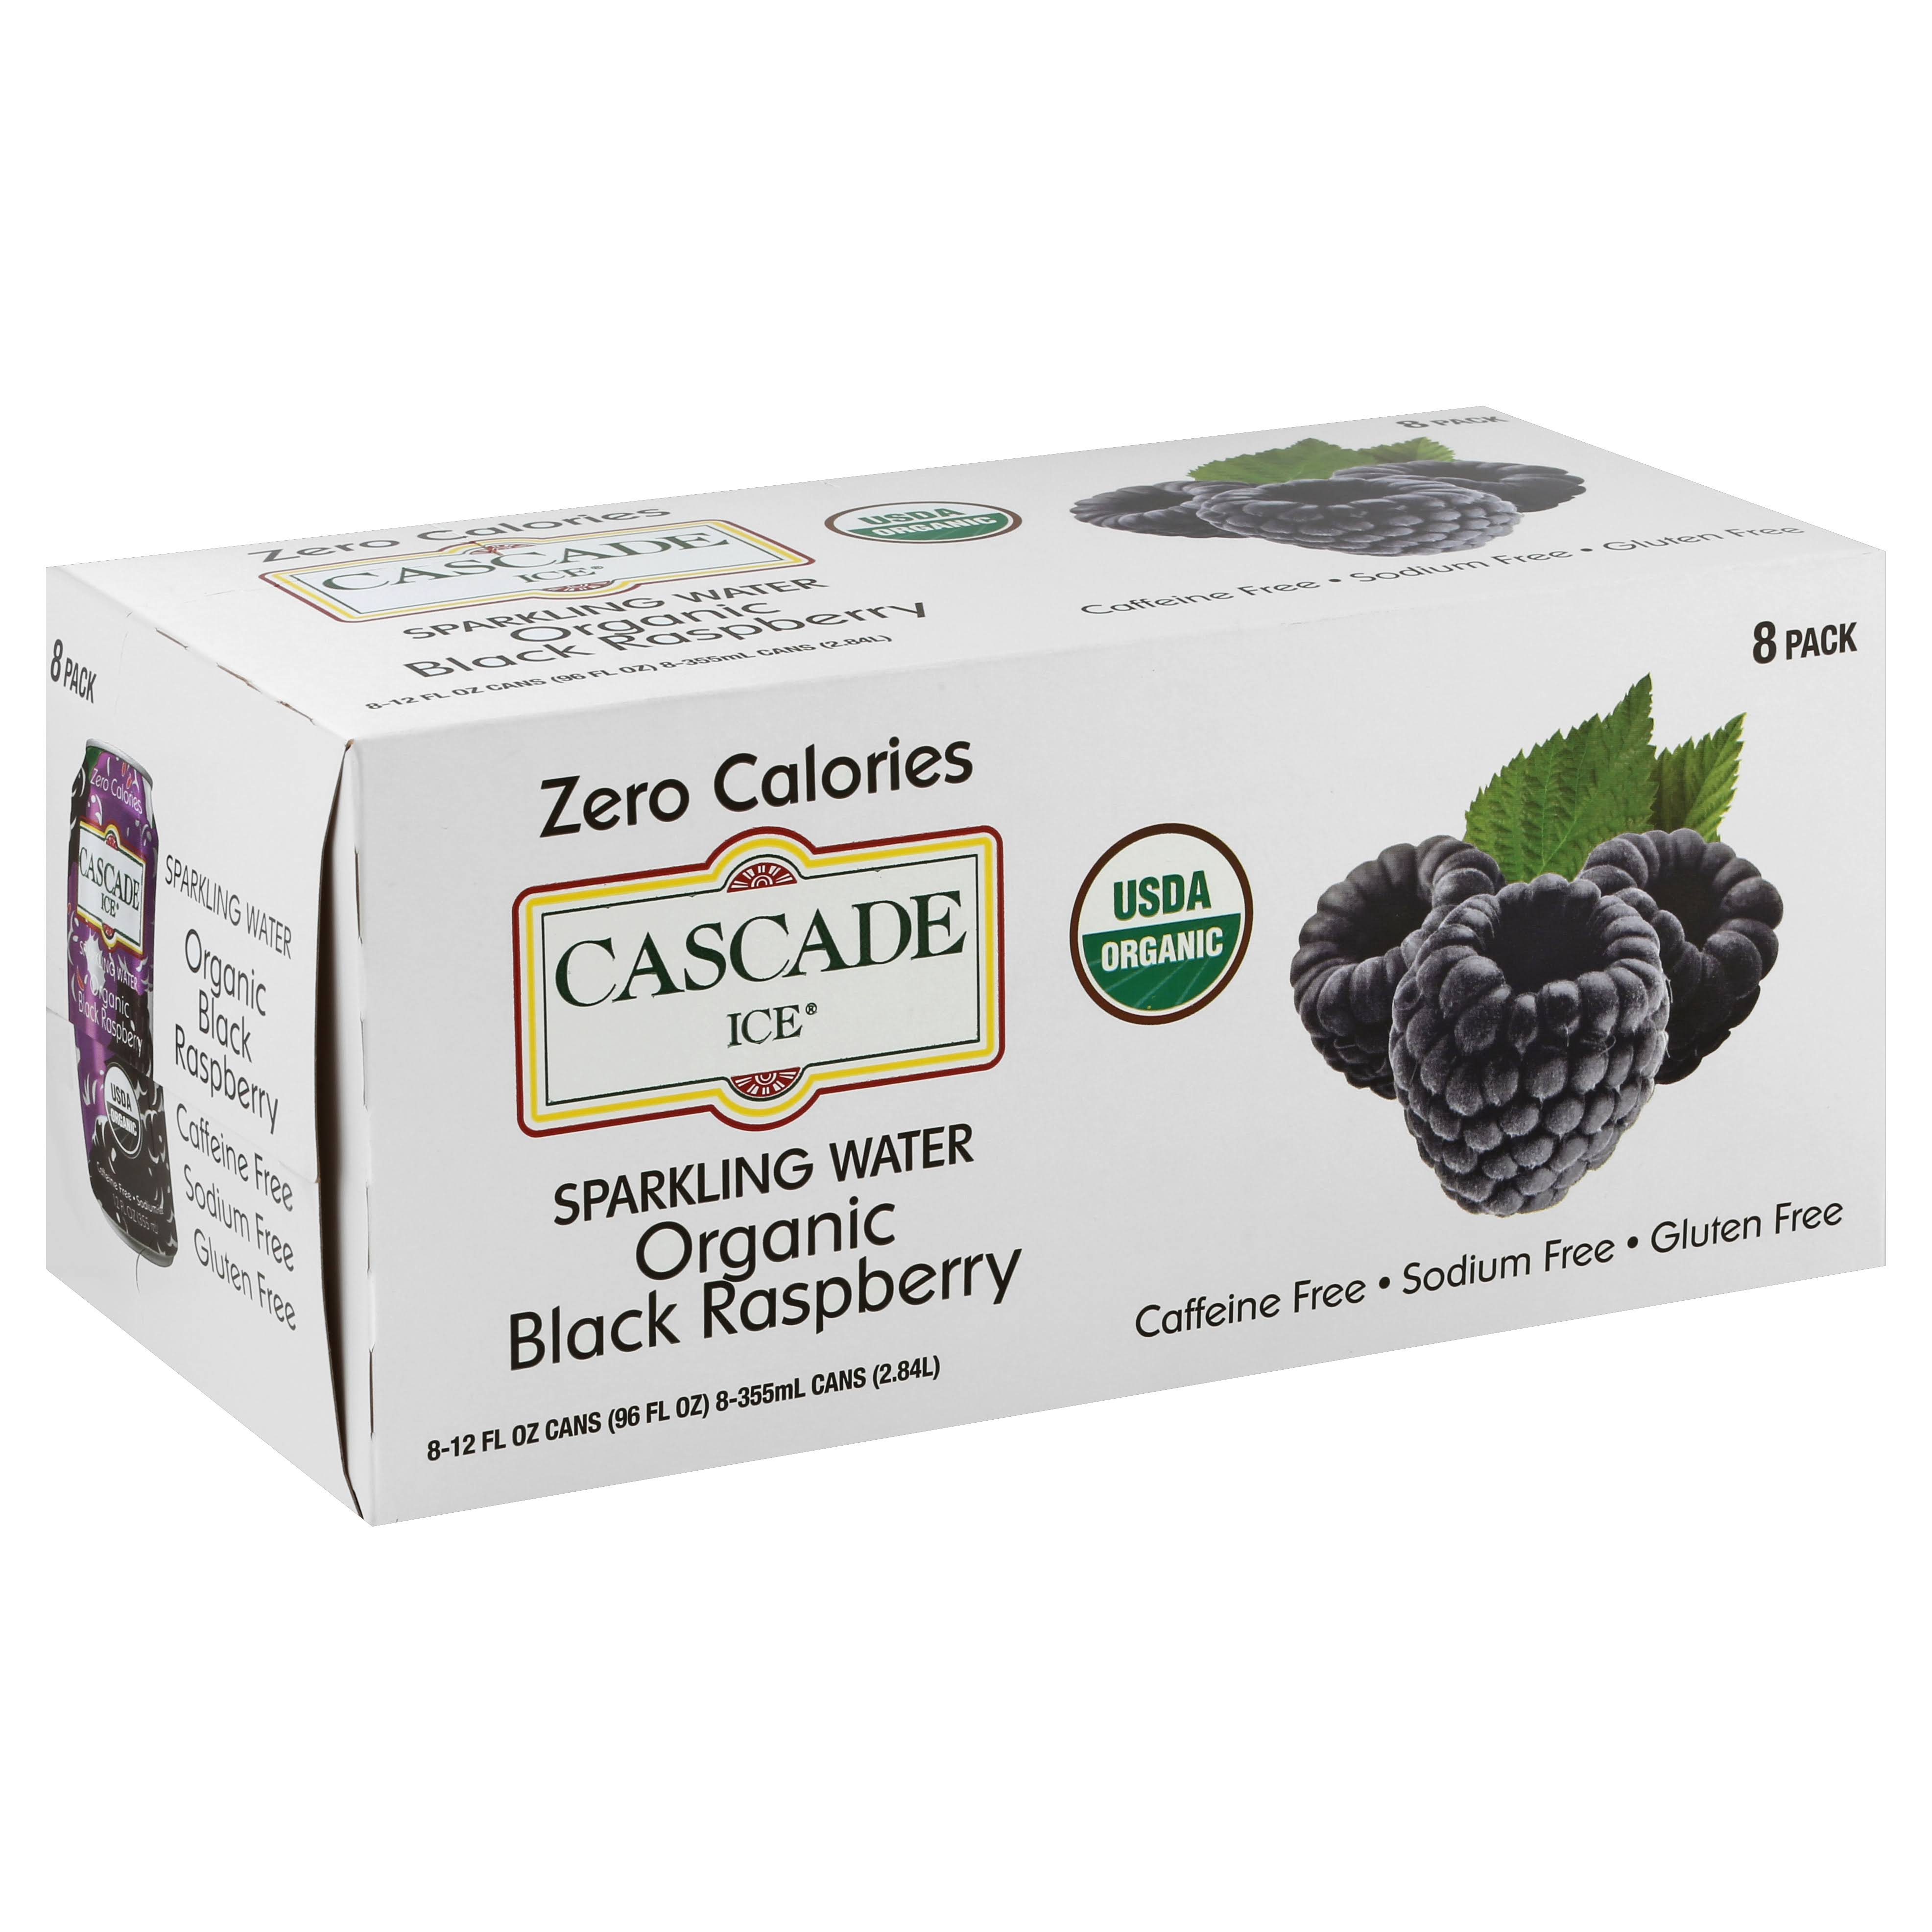 Cascade Ice Sparkling Water, Organic, Black Raspberry, 8 Pack - 8 pack, 12 fl oz cans